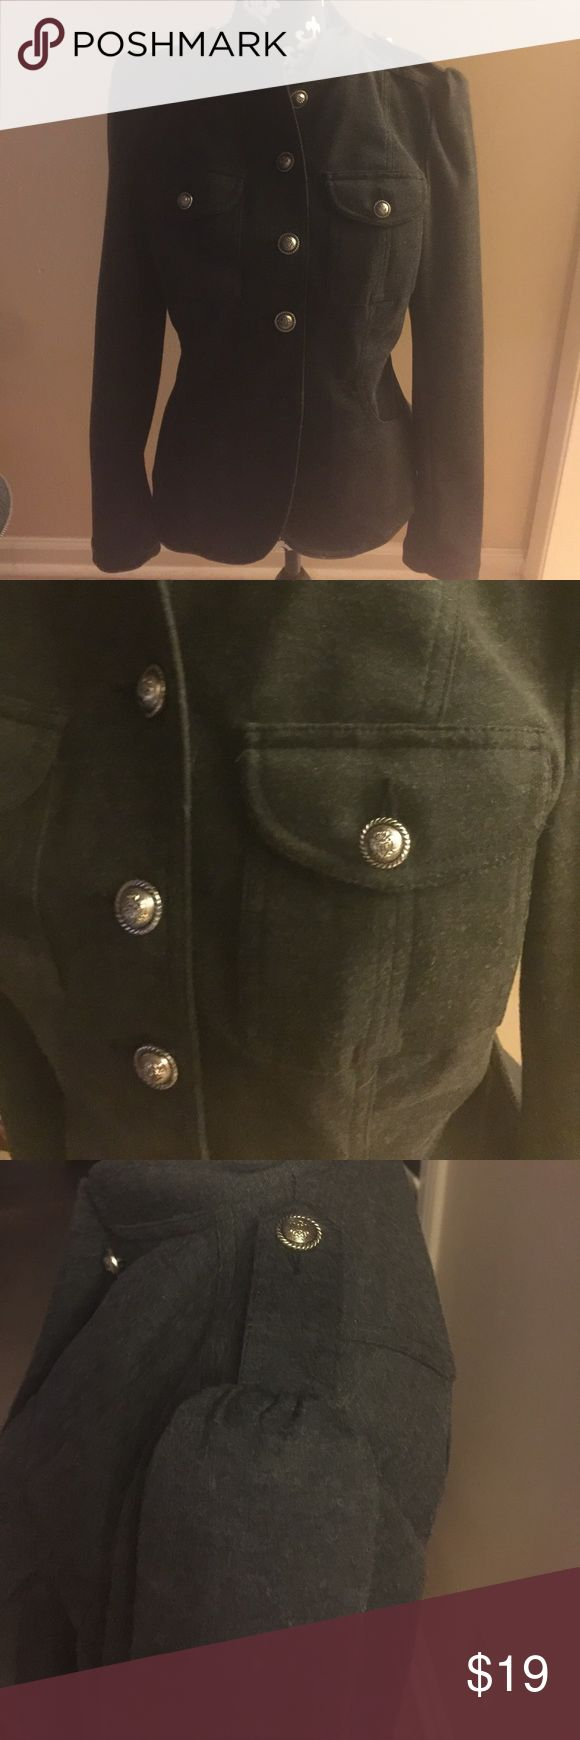 Women's Military Style Jacket size small Military style jacket.  Beautiful gold buttons.  Front pockets.  Decorative shoulder buttons . Buttons at wrist. Fitted with darts on back.  Pretty charcoal gray. INC International Concepts Jackets & Coats